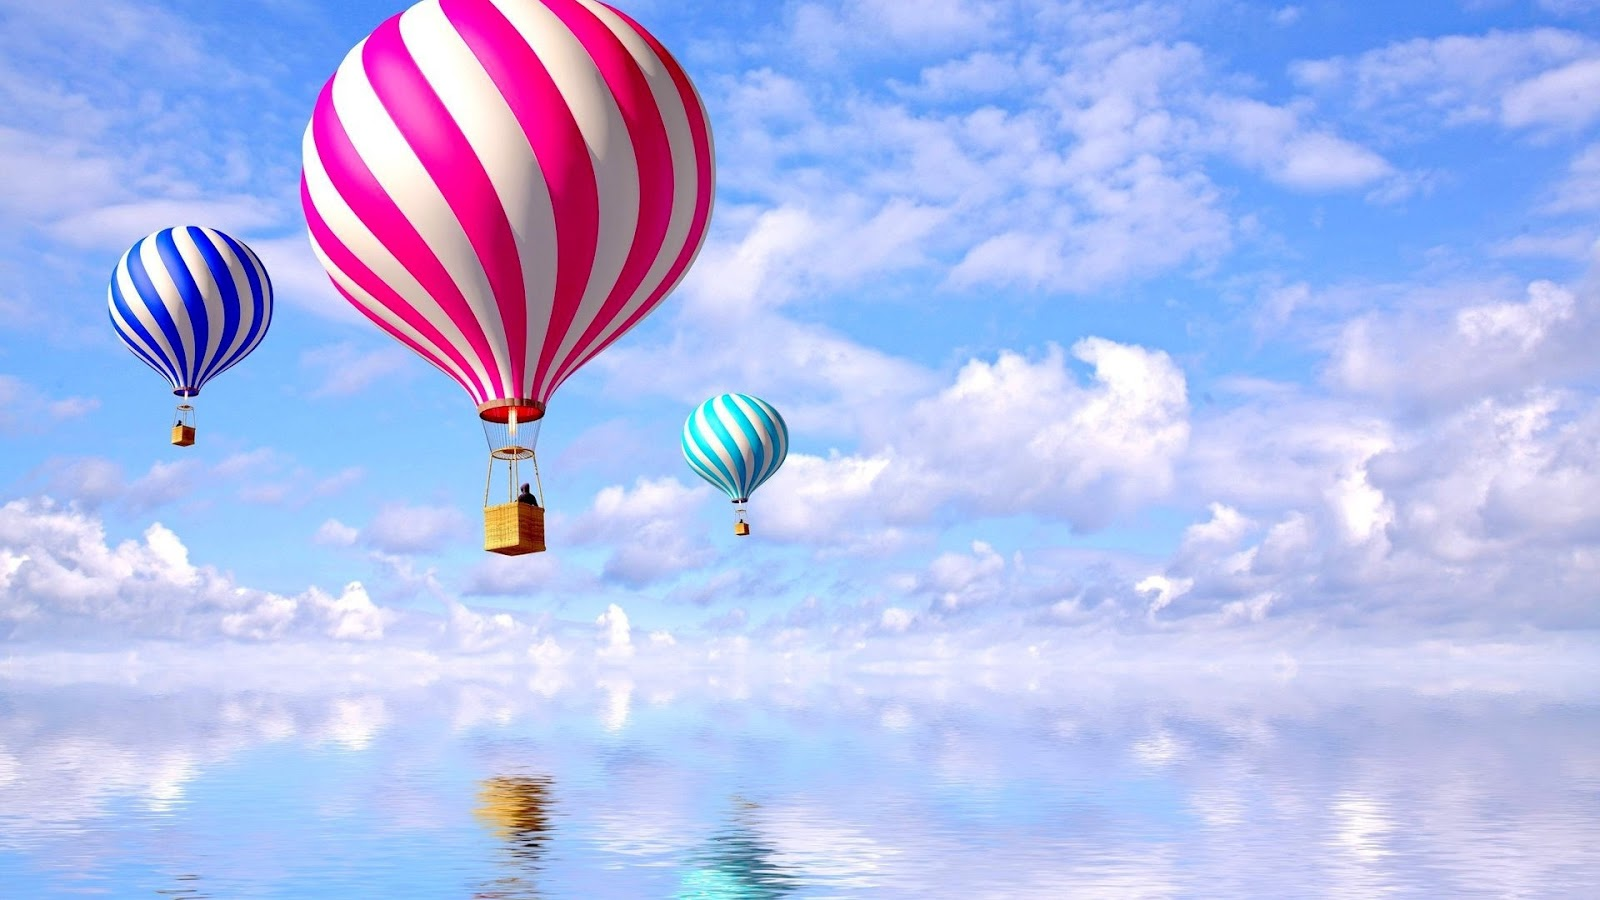 balloons wallpapers - photo #14